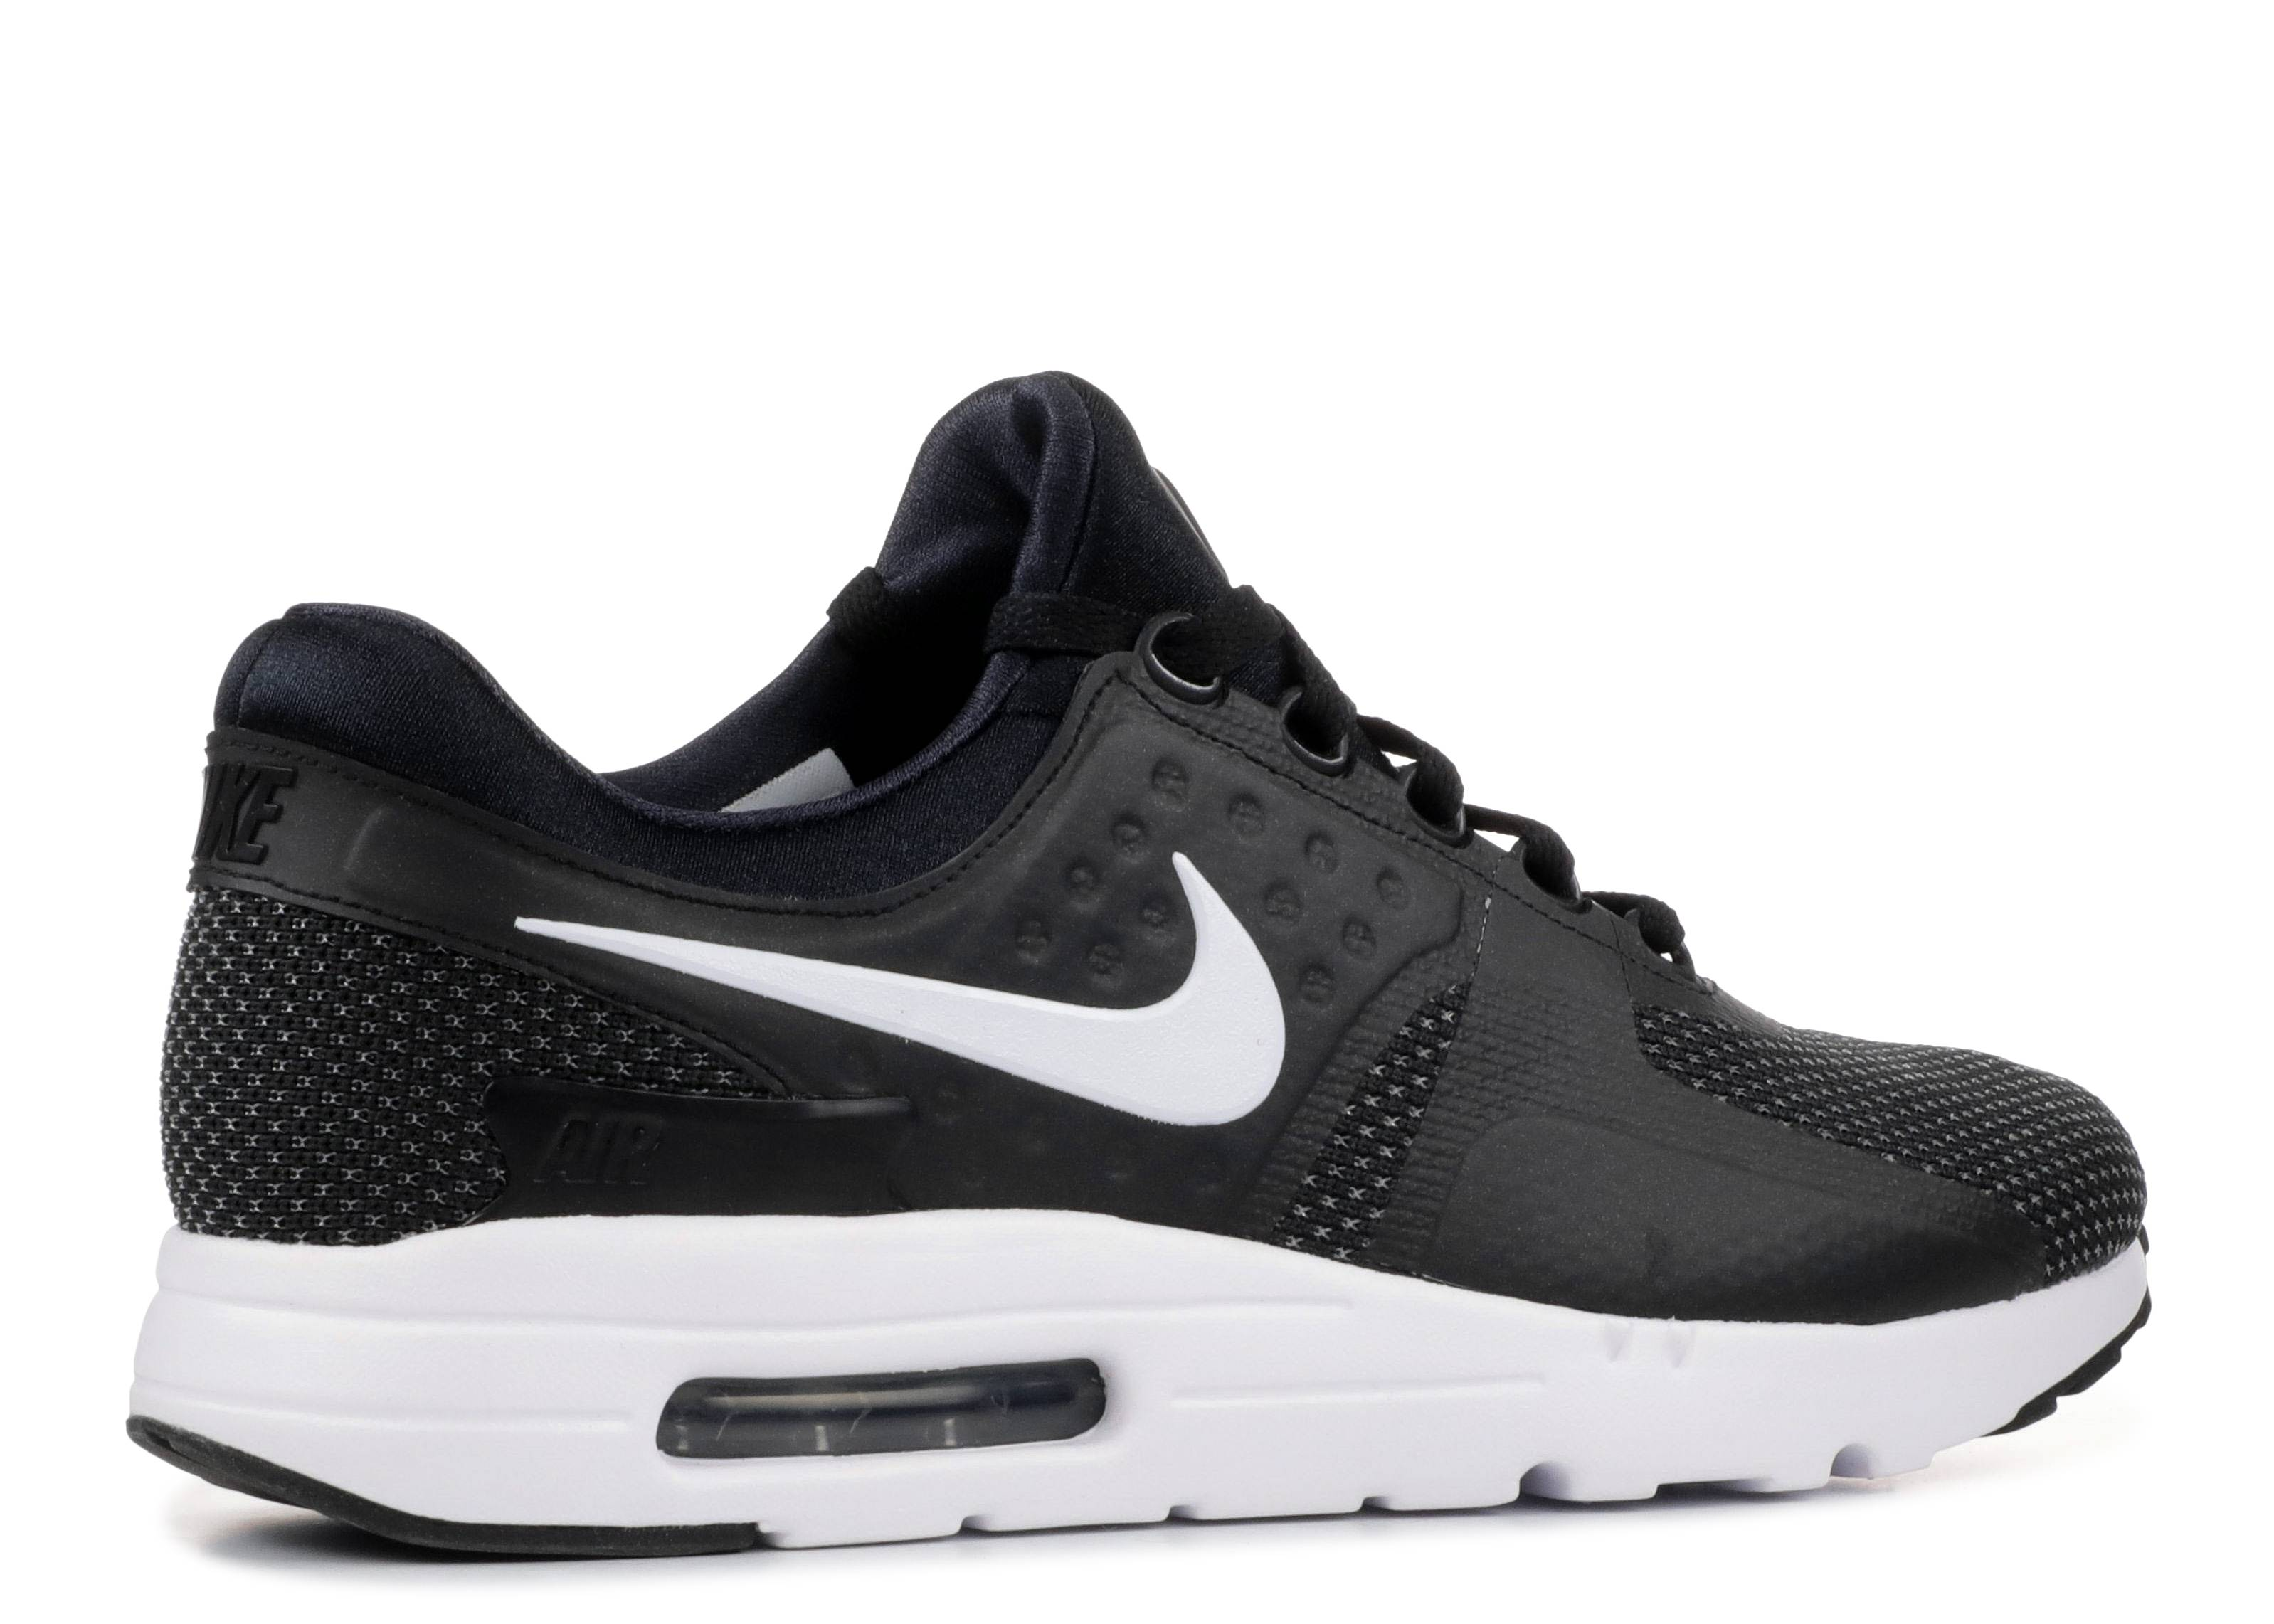 Nike AIR MAX ZERO BR Black Grey Free delivery with